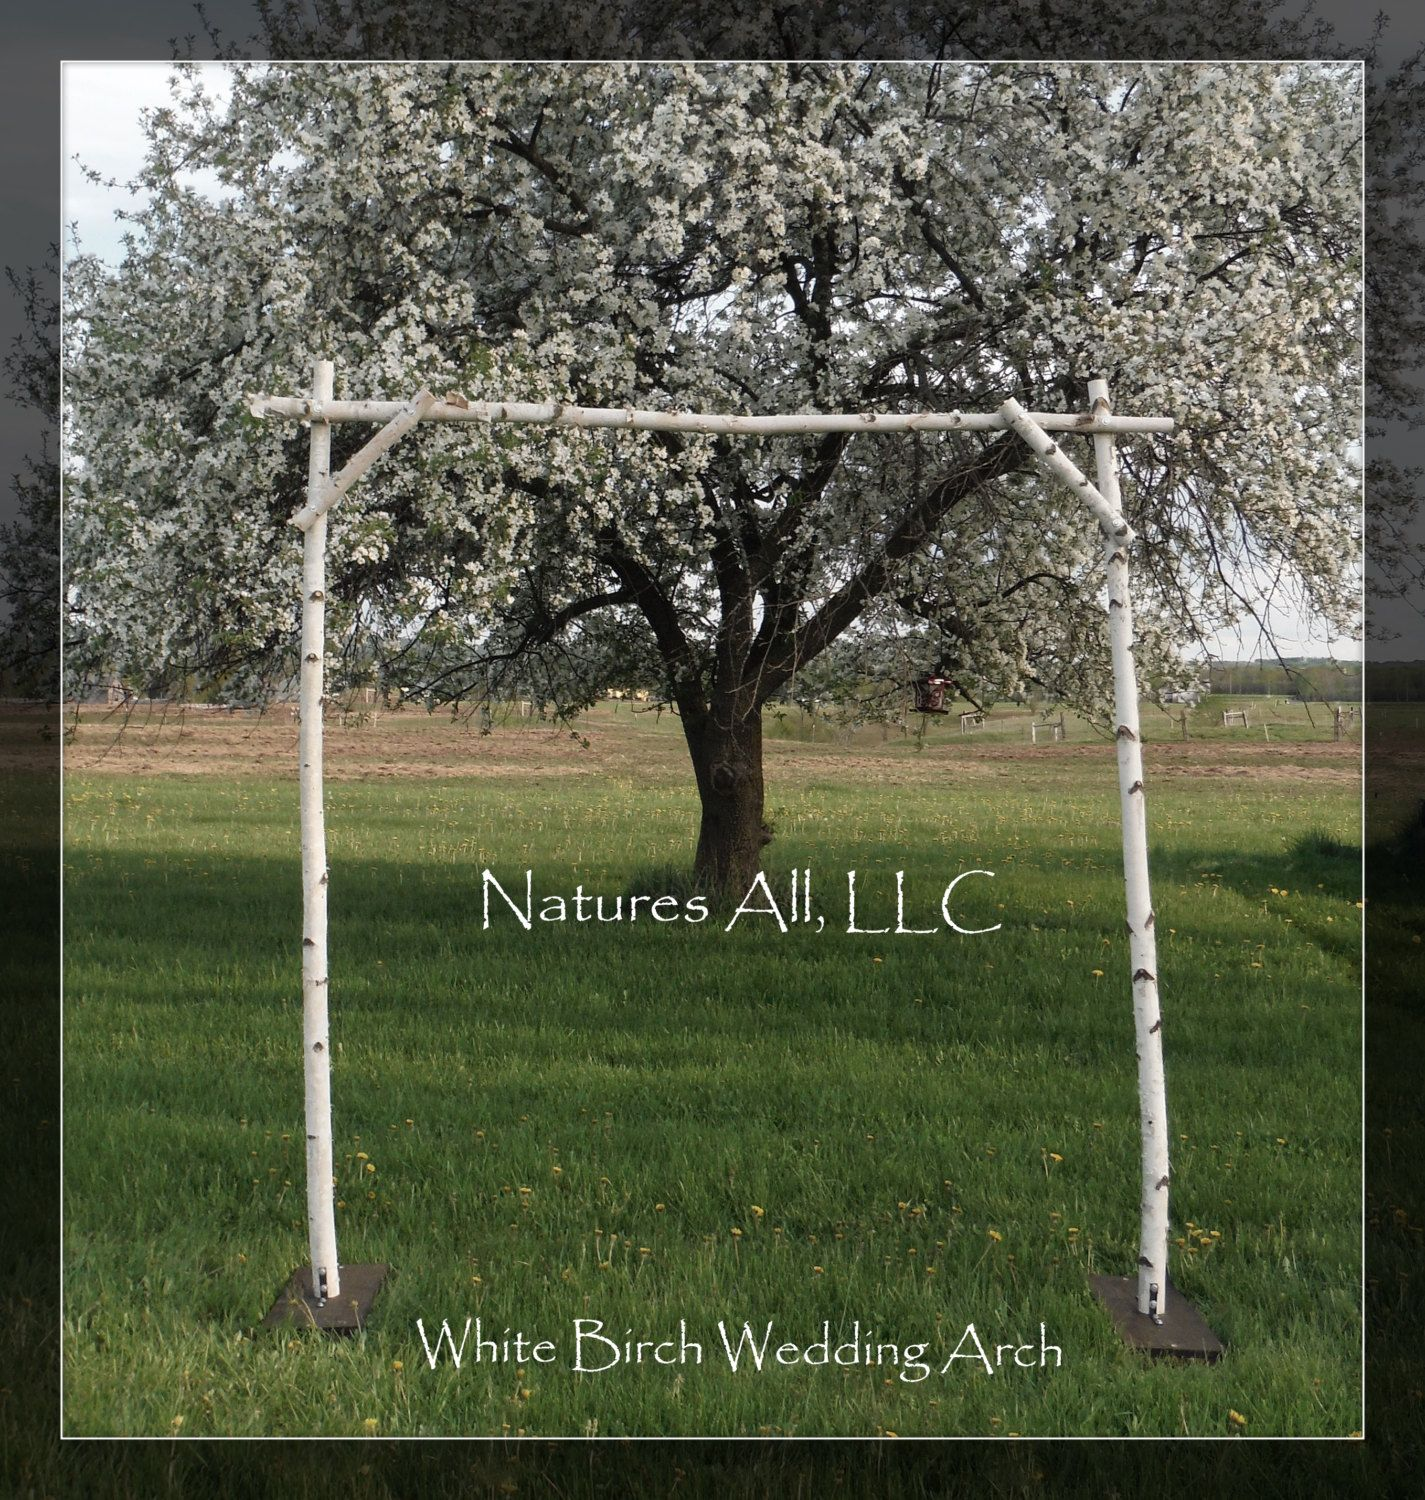 DIY White Birch Wedding Arch Kit For Indoor Or Outdoor Weddings Item